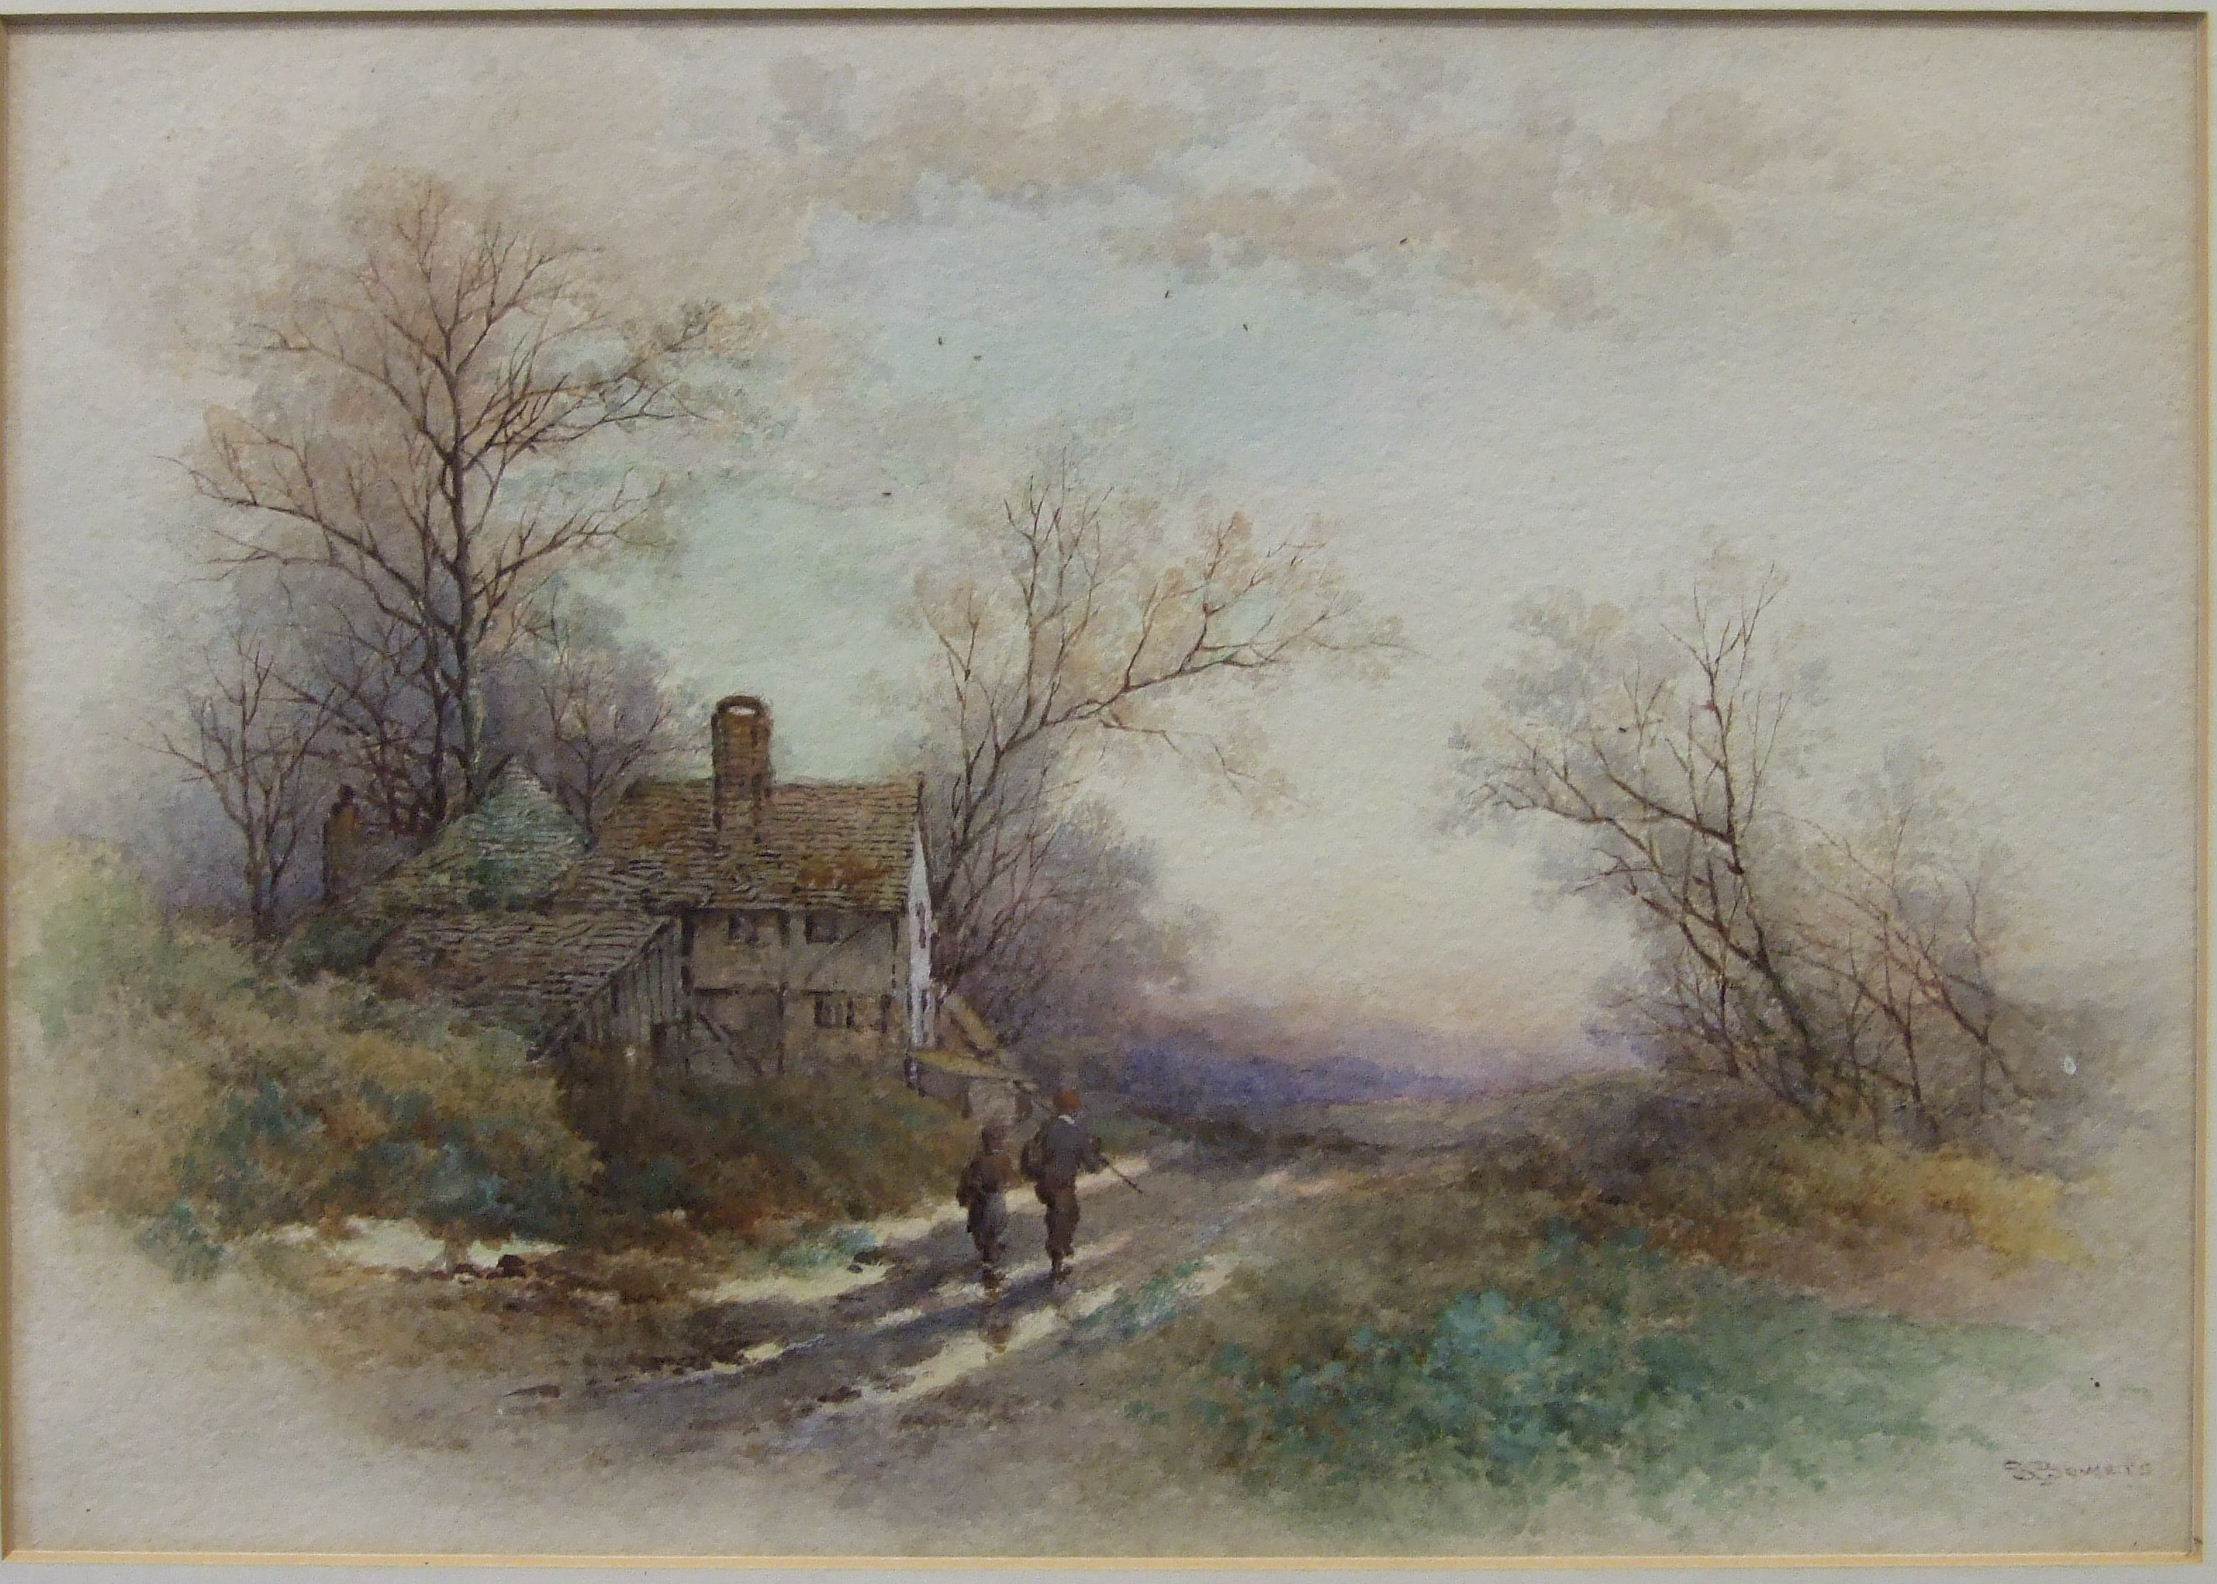 Lot 32 - S Bowers TWO YOUNG BOYS CARRYING FISHING EQUIPMENT, WALKING PAST A COTTAGE ON A COUNTRY LANE